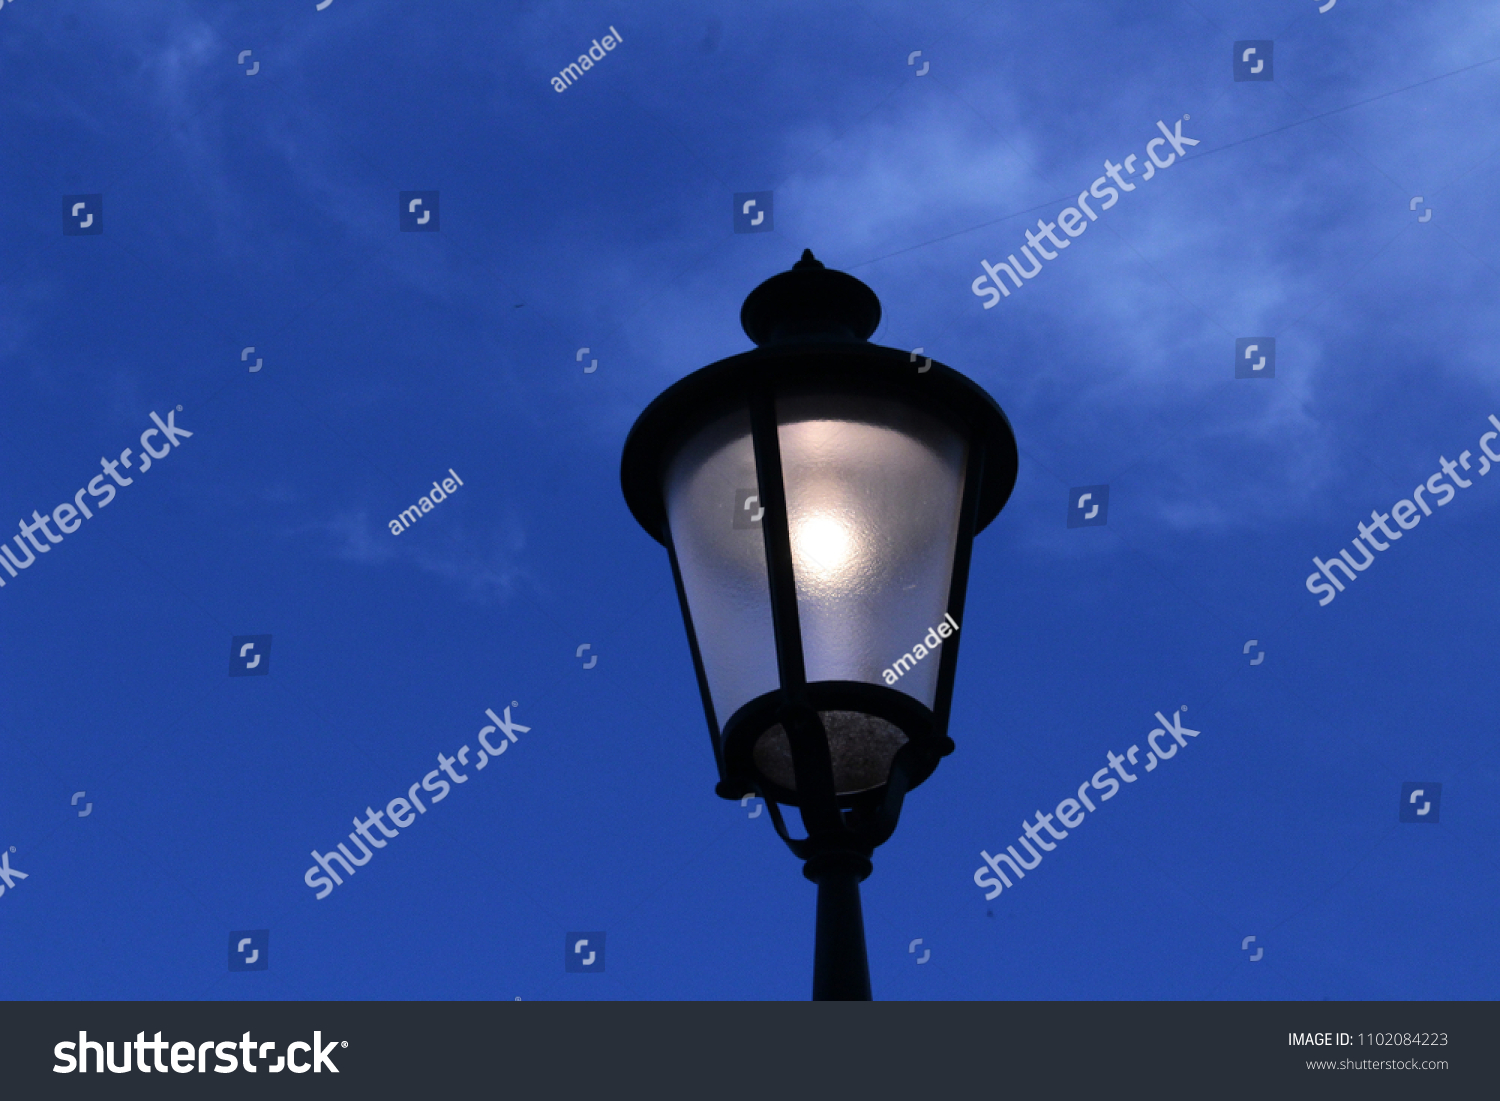 stock-photo-lantern-street-lamp-turned-o